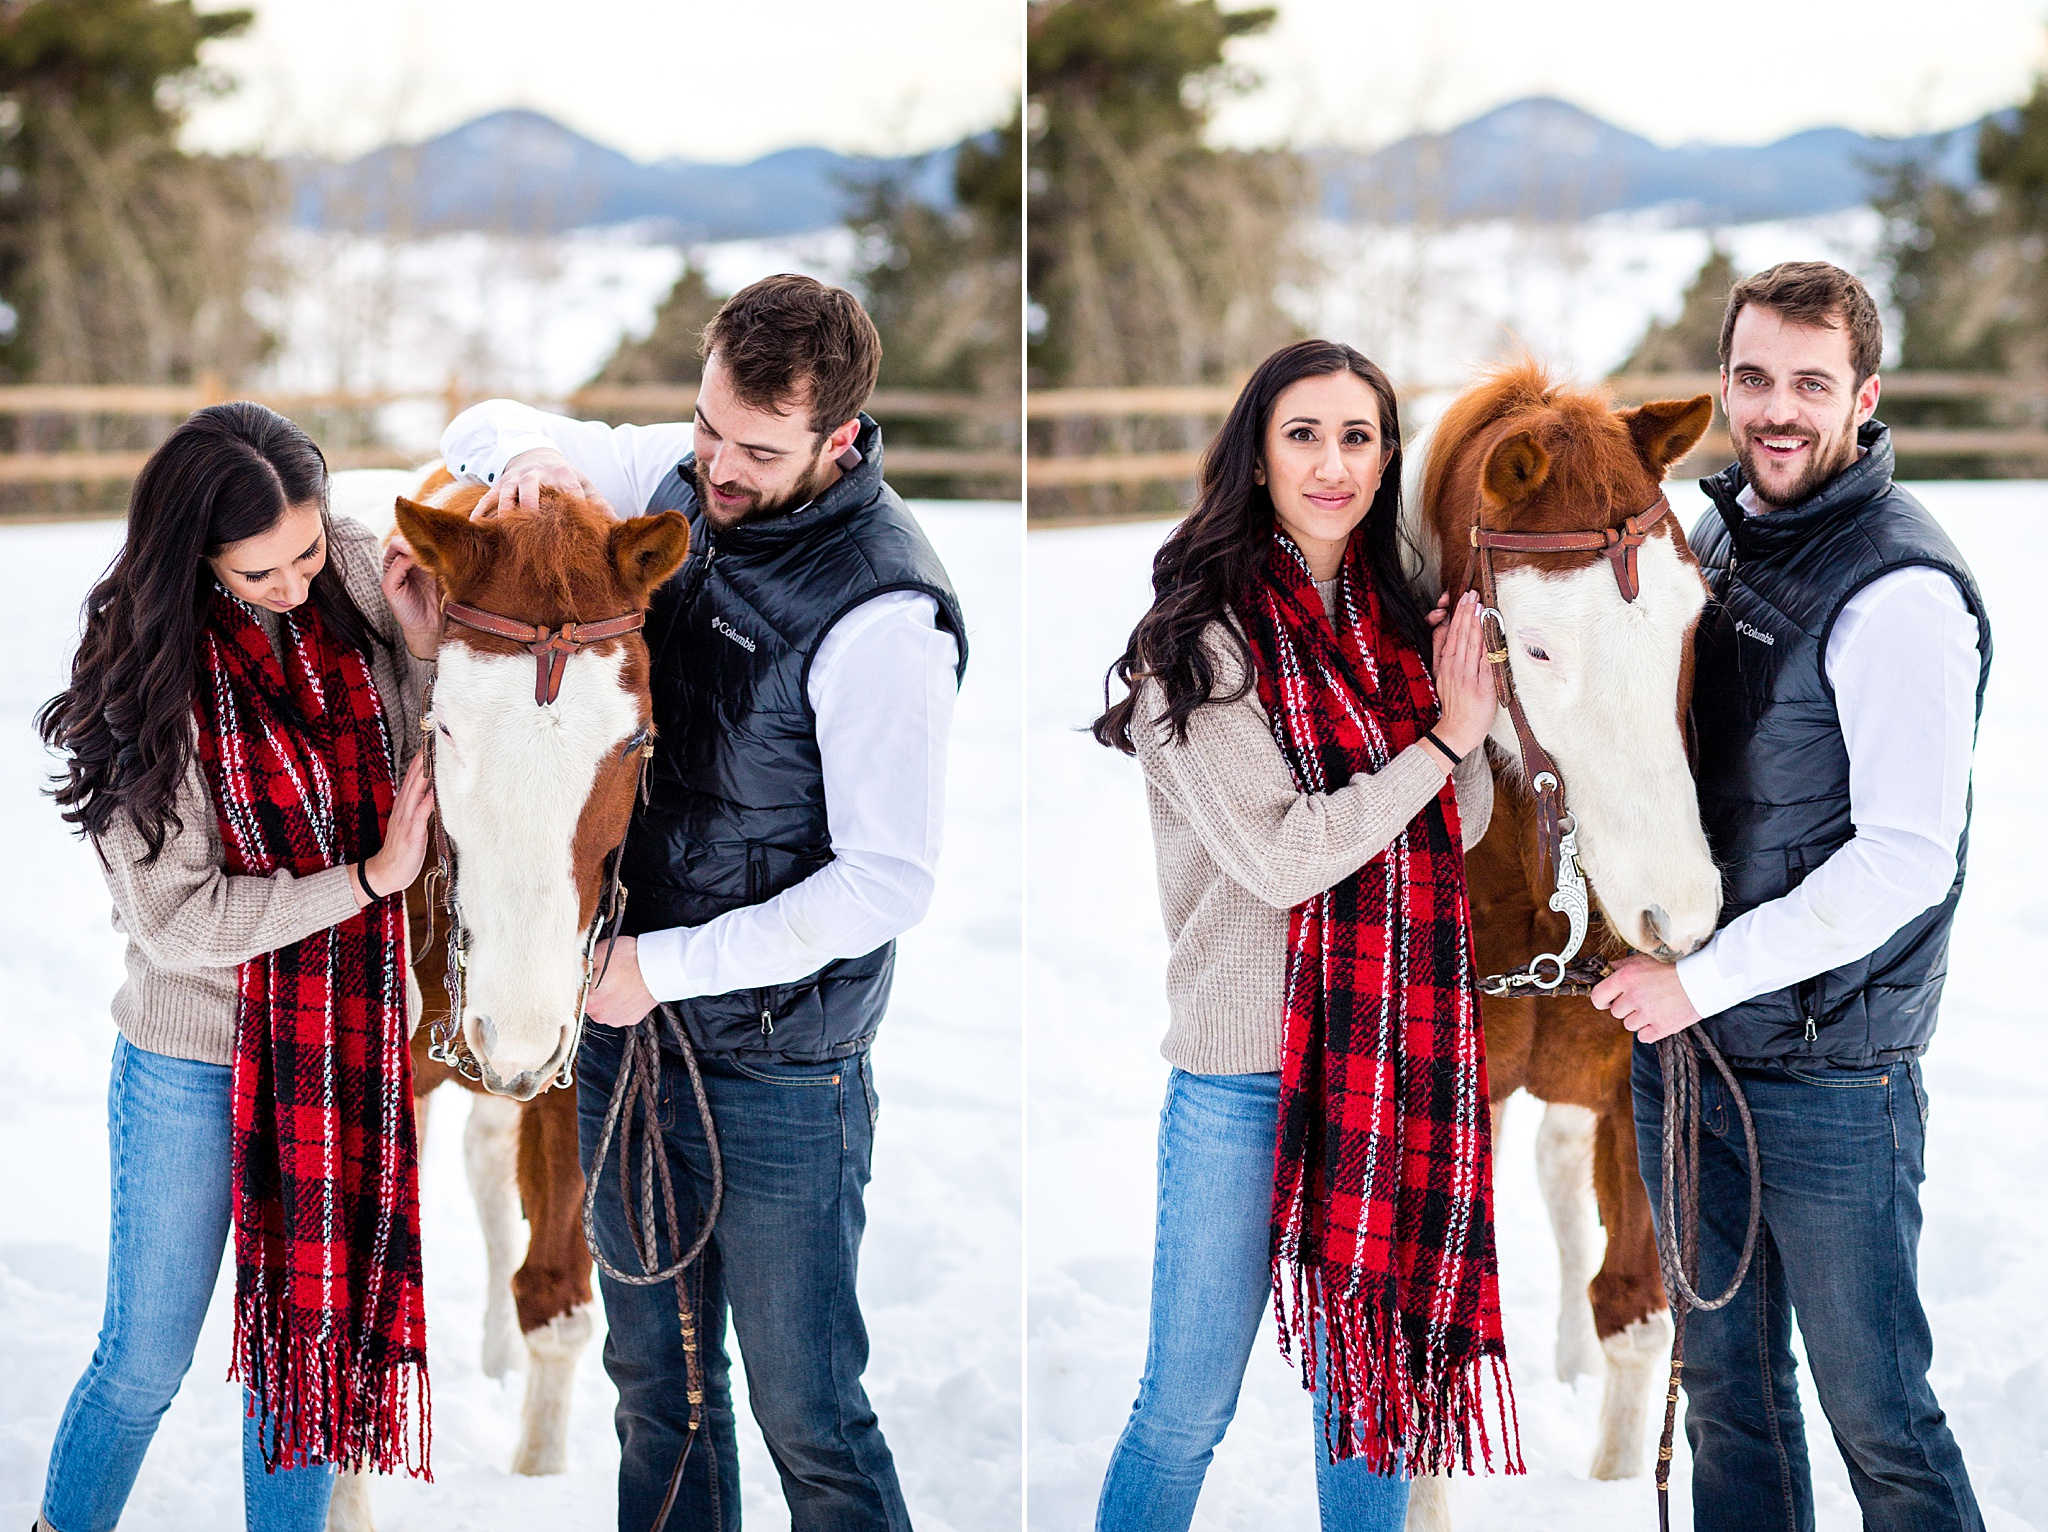 Matt & Michelle's Morrison Ranch Engagement Session with Horses & Dog. Colorado Engagement Photography by All Digital Photo & Video. Morrison Engagement Photography, Horse Engagement Session, Ranch Engagement Session, Colorado Engagement Photos, Mountain Engagement Photos, Winter Engagement Photos, Snowy Engagement Photos, Mountain Engagement Photography, Denver Engagement Photography, Rocky Mountain Engagement